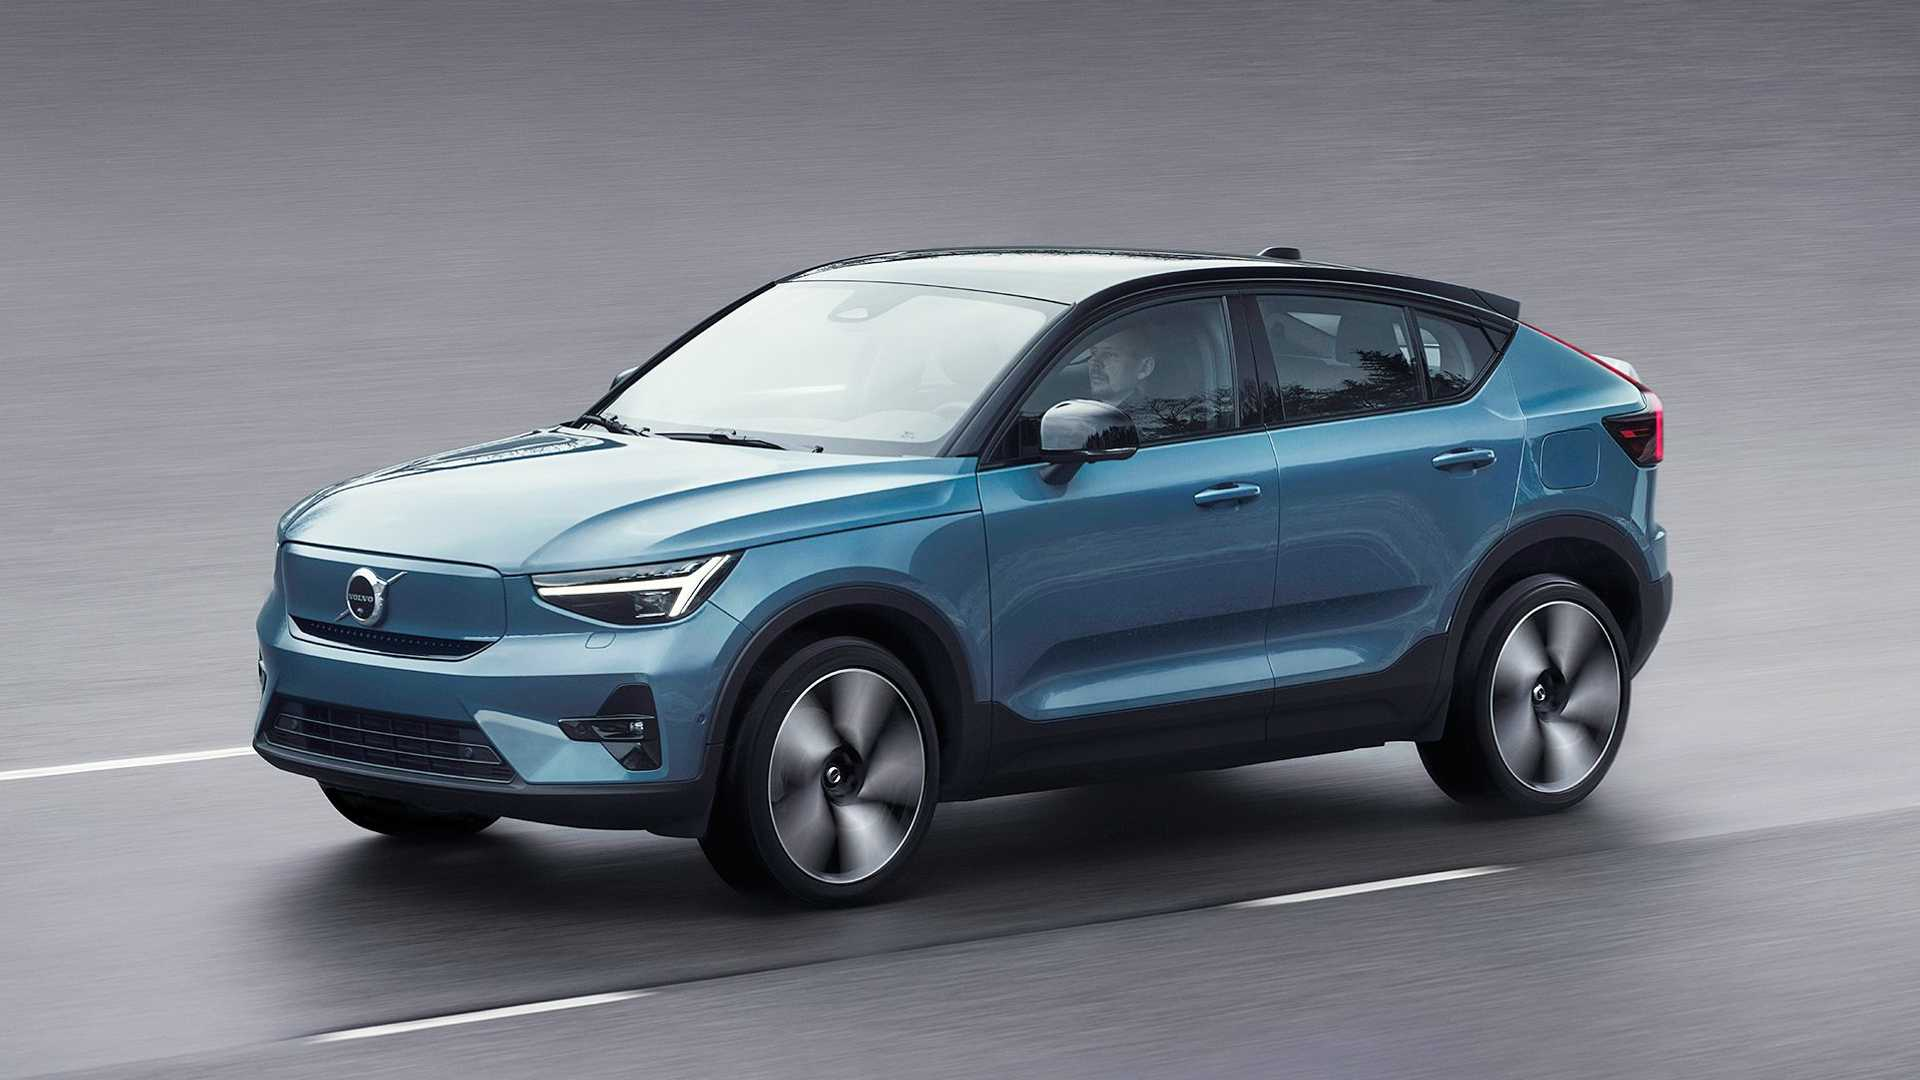 Volvo C40 Recharge (2021): Die Coupé-SUV-Version des XC40